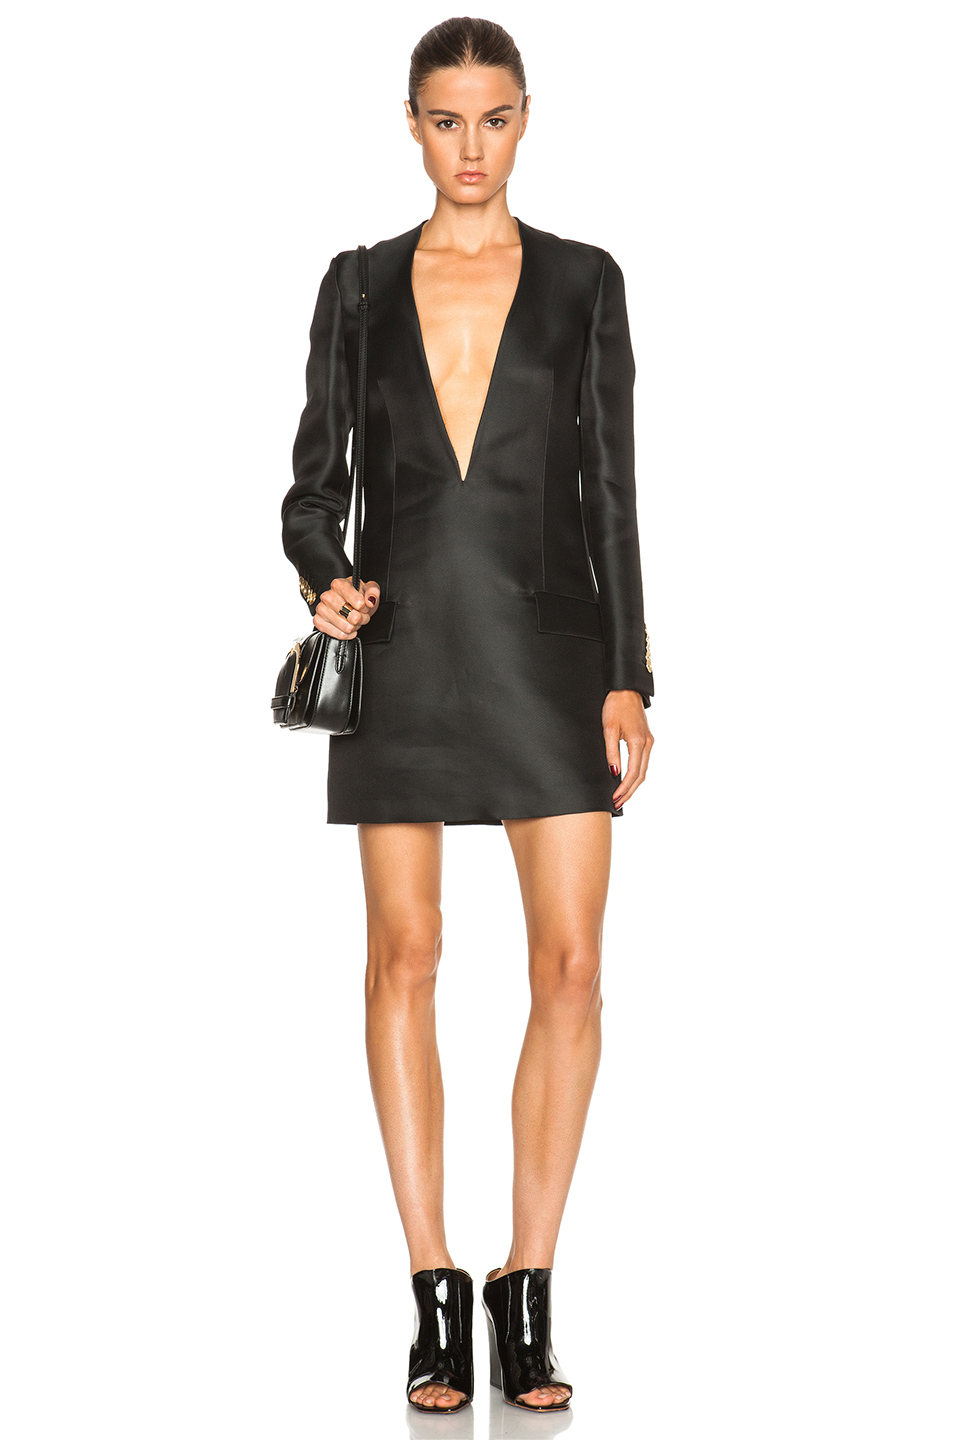 Suit Jacket Dress - JacketIn